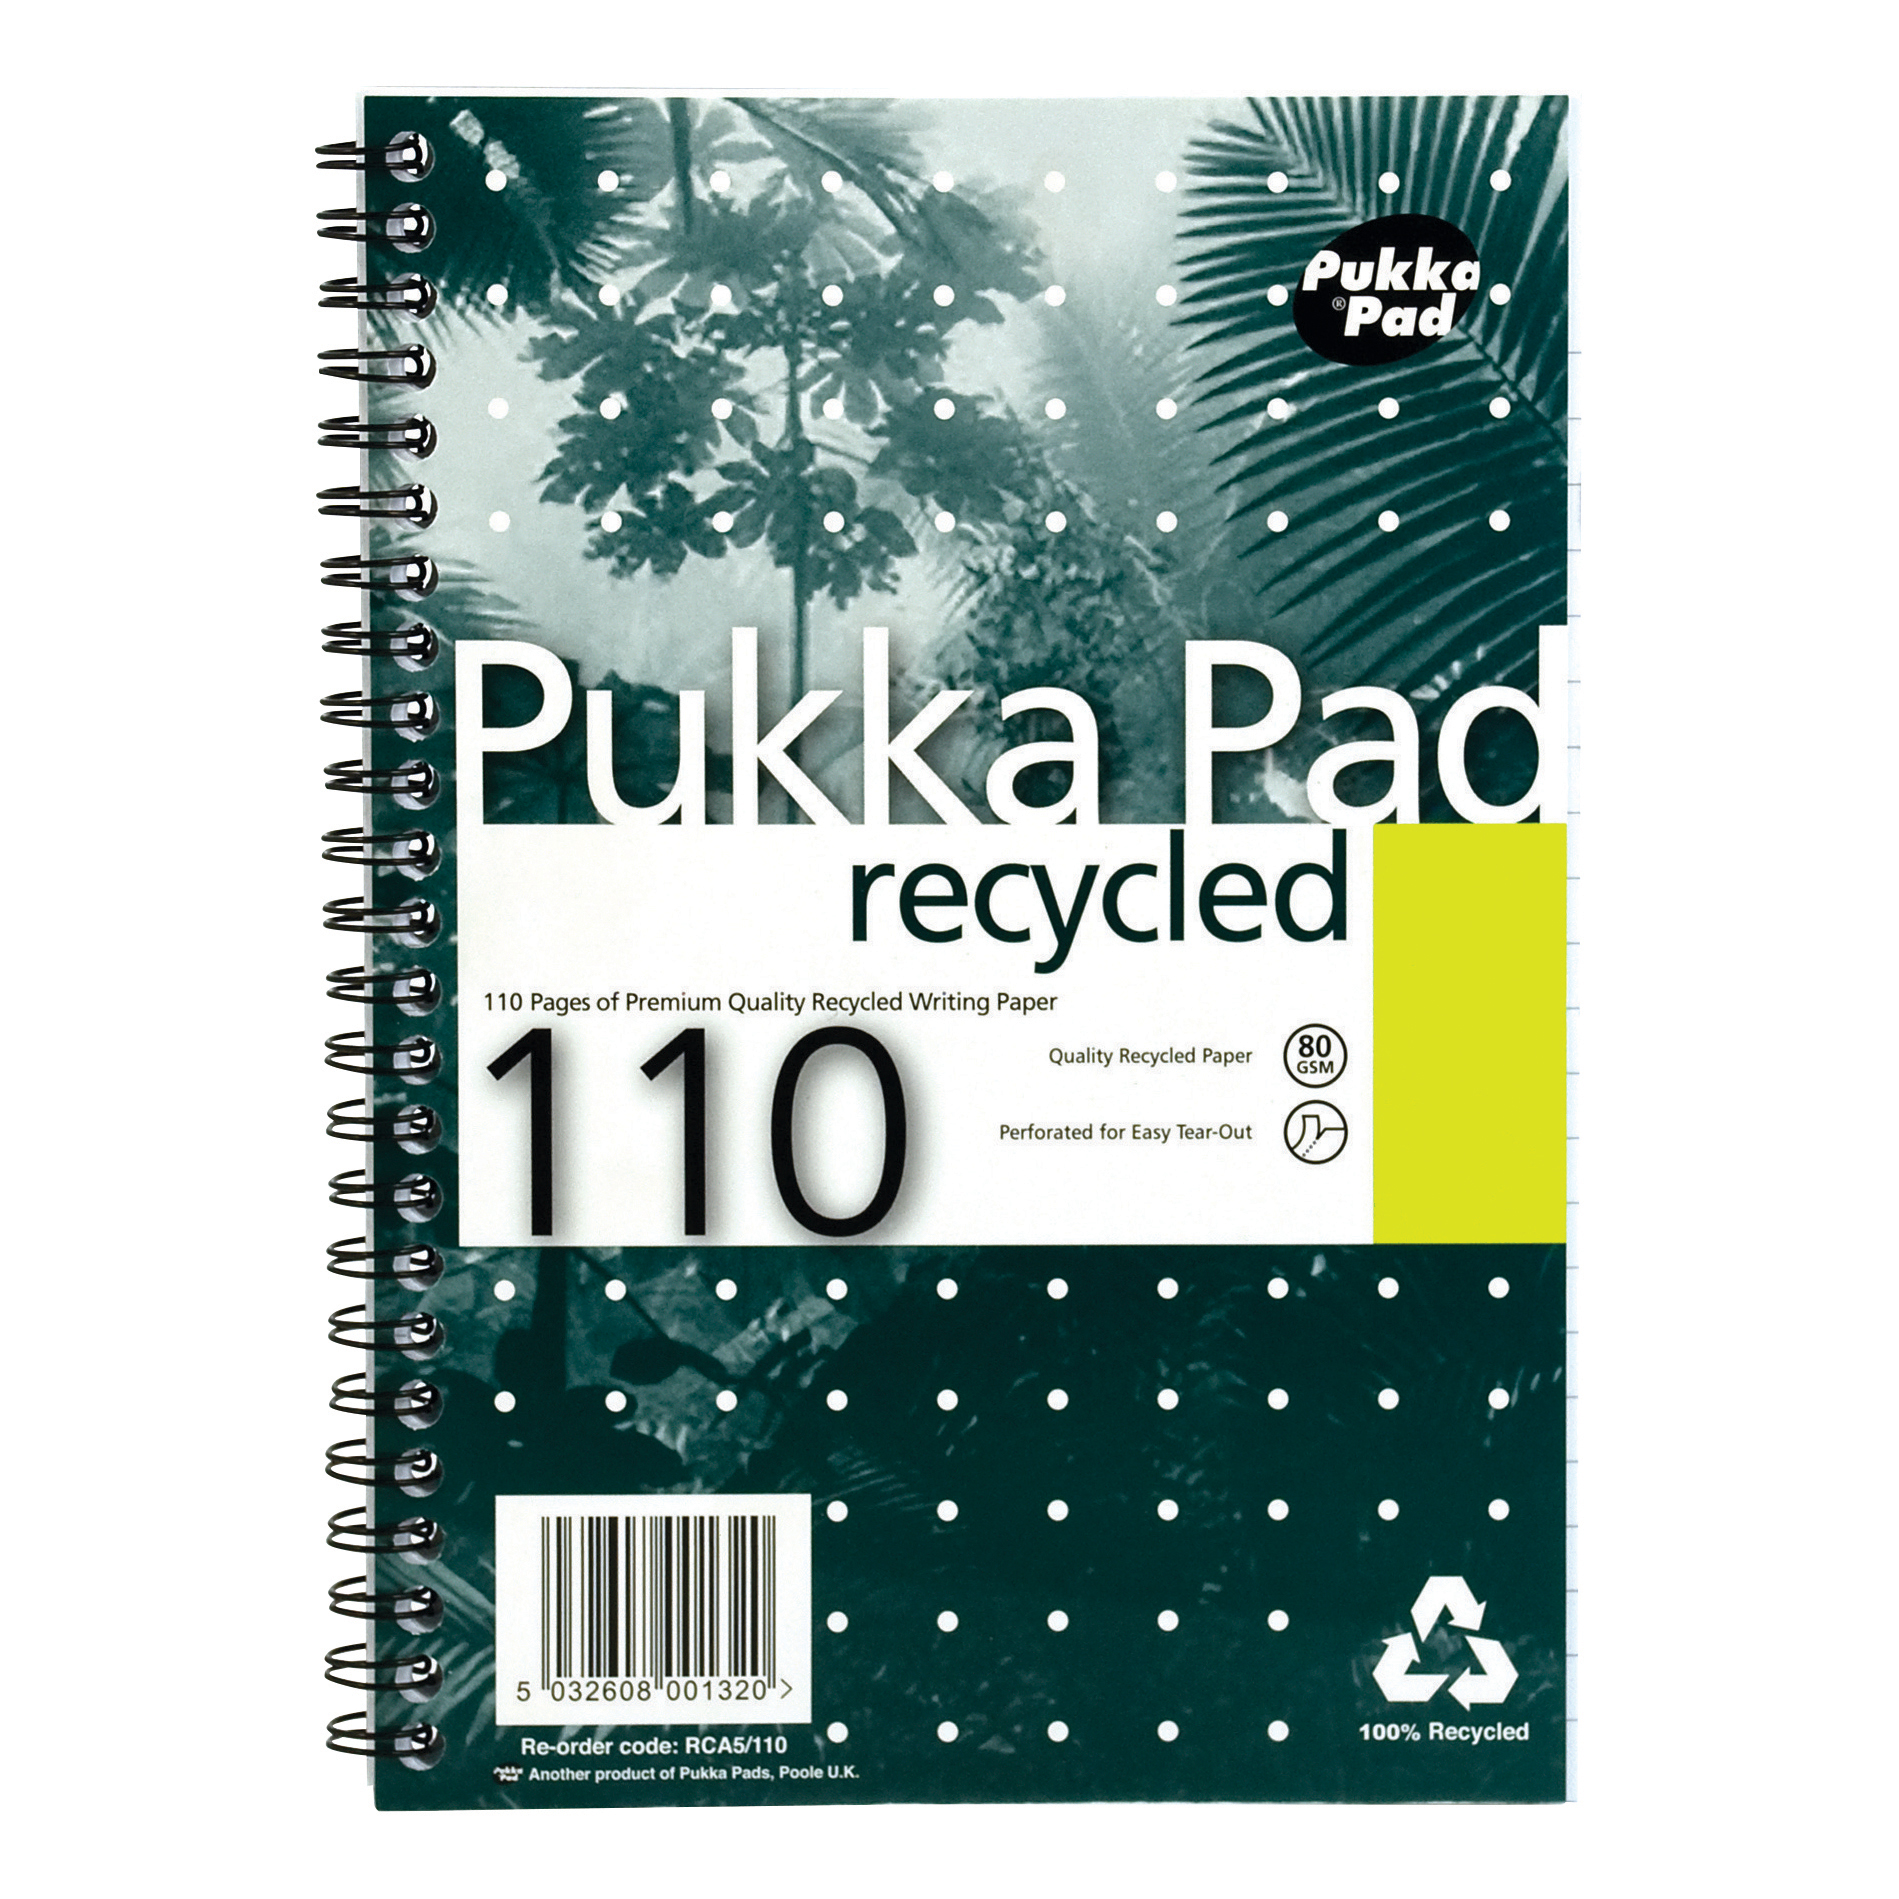 Pilot Begreen B2P Rollerball Pen 0.7mm Line Blk Ref 054101001 [Pack 10][FREE Pukka Pad Pack 3] Apr-Sep 19